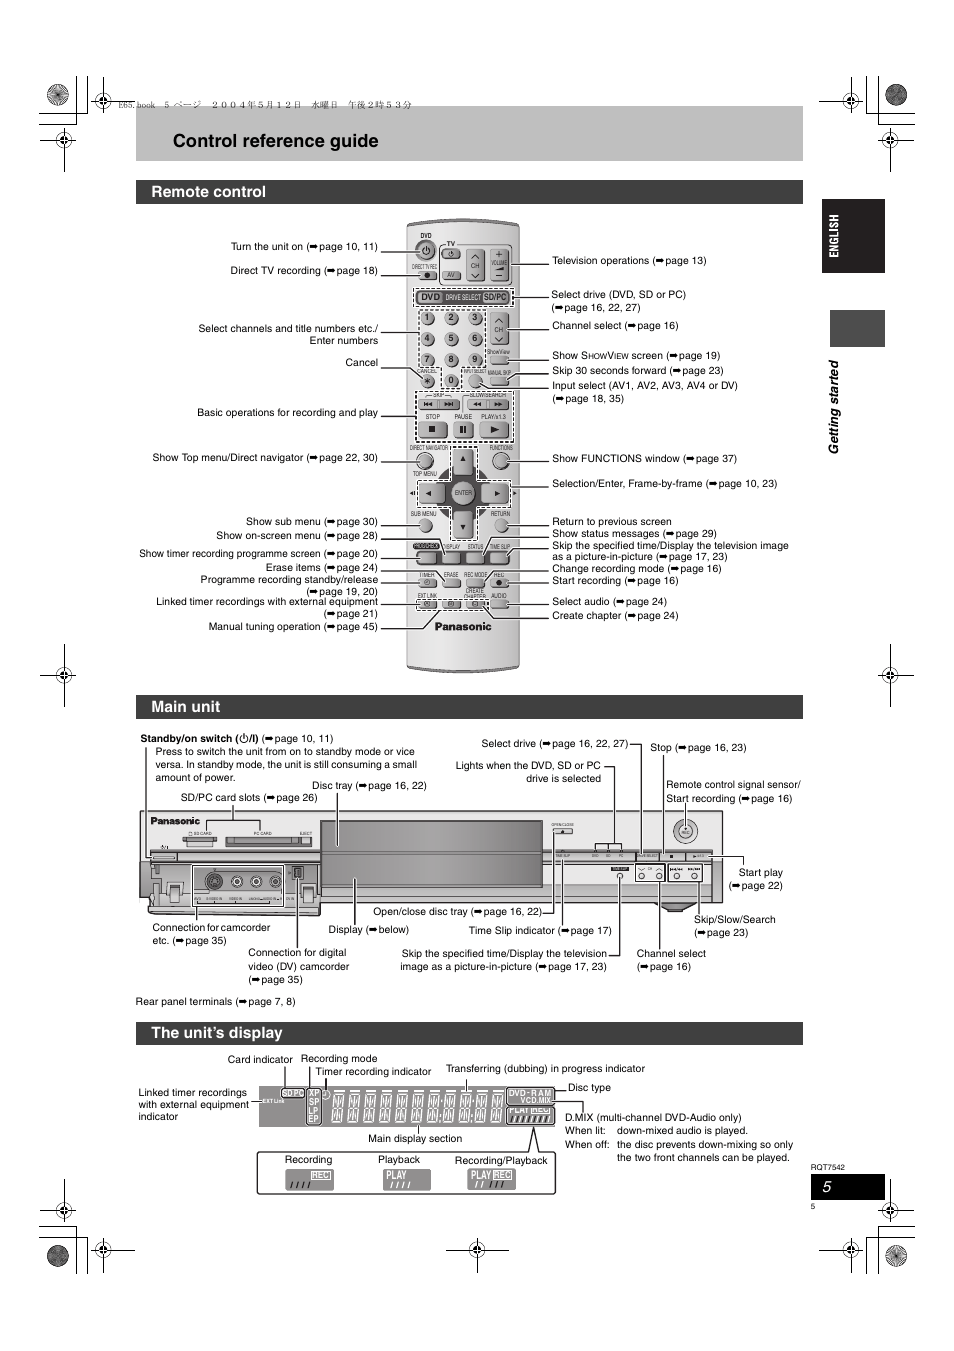 Control reference guide, Remote control, Main unit